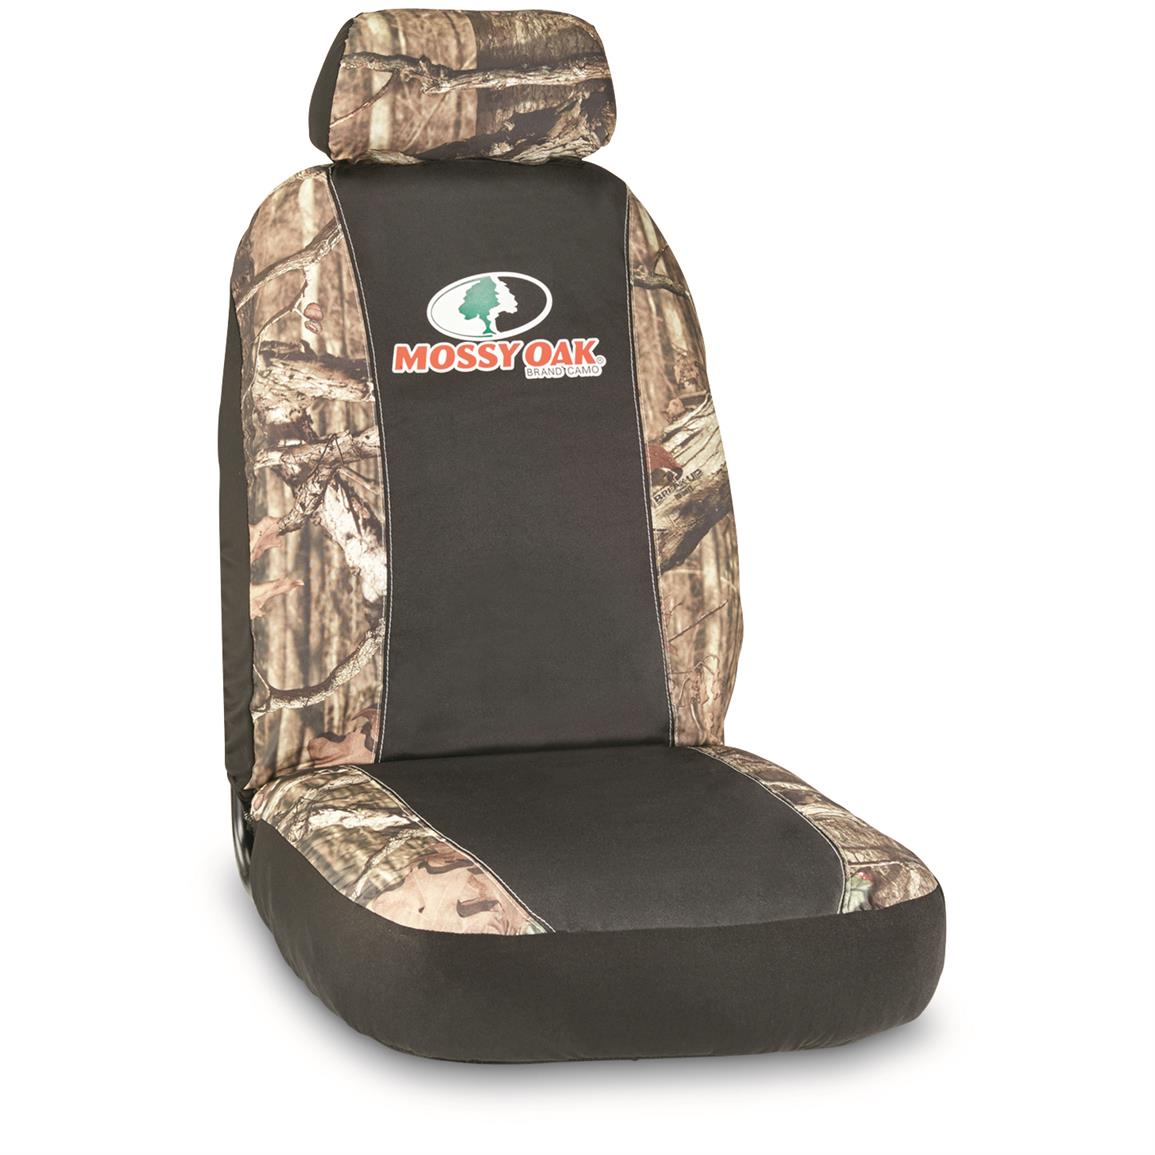 Low-back Camo Seat Cover, Mossy Oak Break-Up Infinity